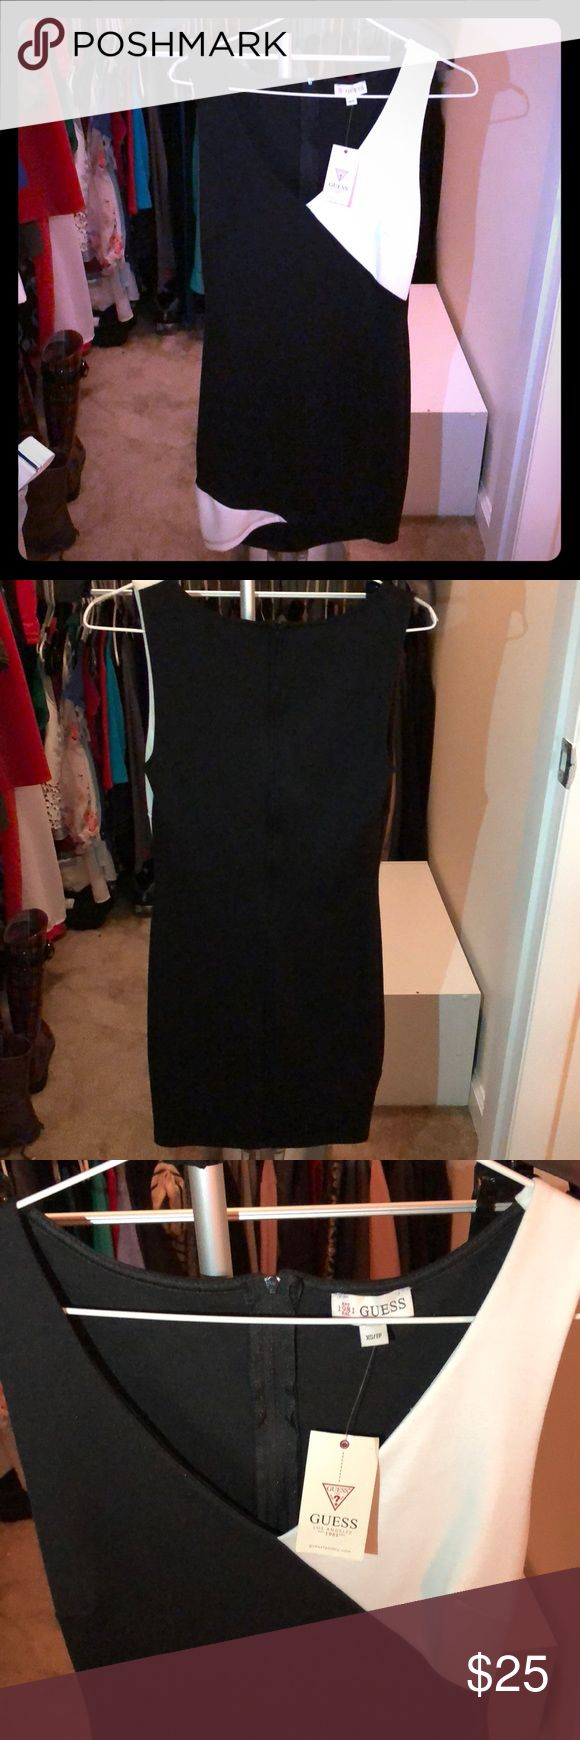 Guess Dress in Perfect condition Never been worn Guess dress. Could be business casual or perfect for a date night!  75% Polyester 22% Rayon 3% Spandex Guess Dresses